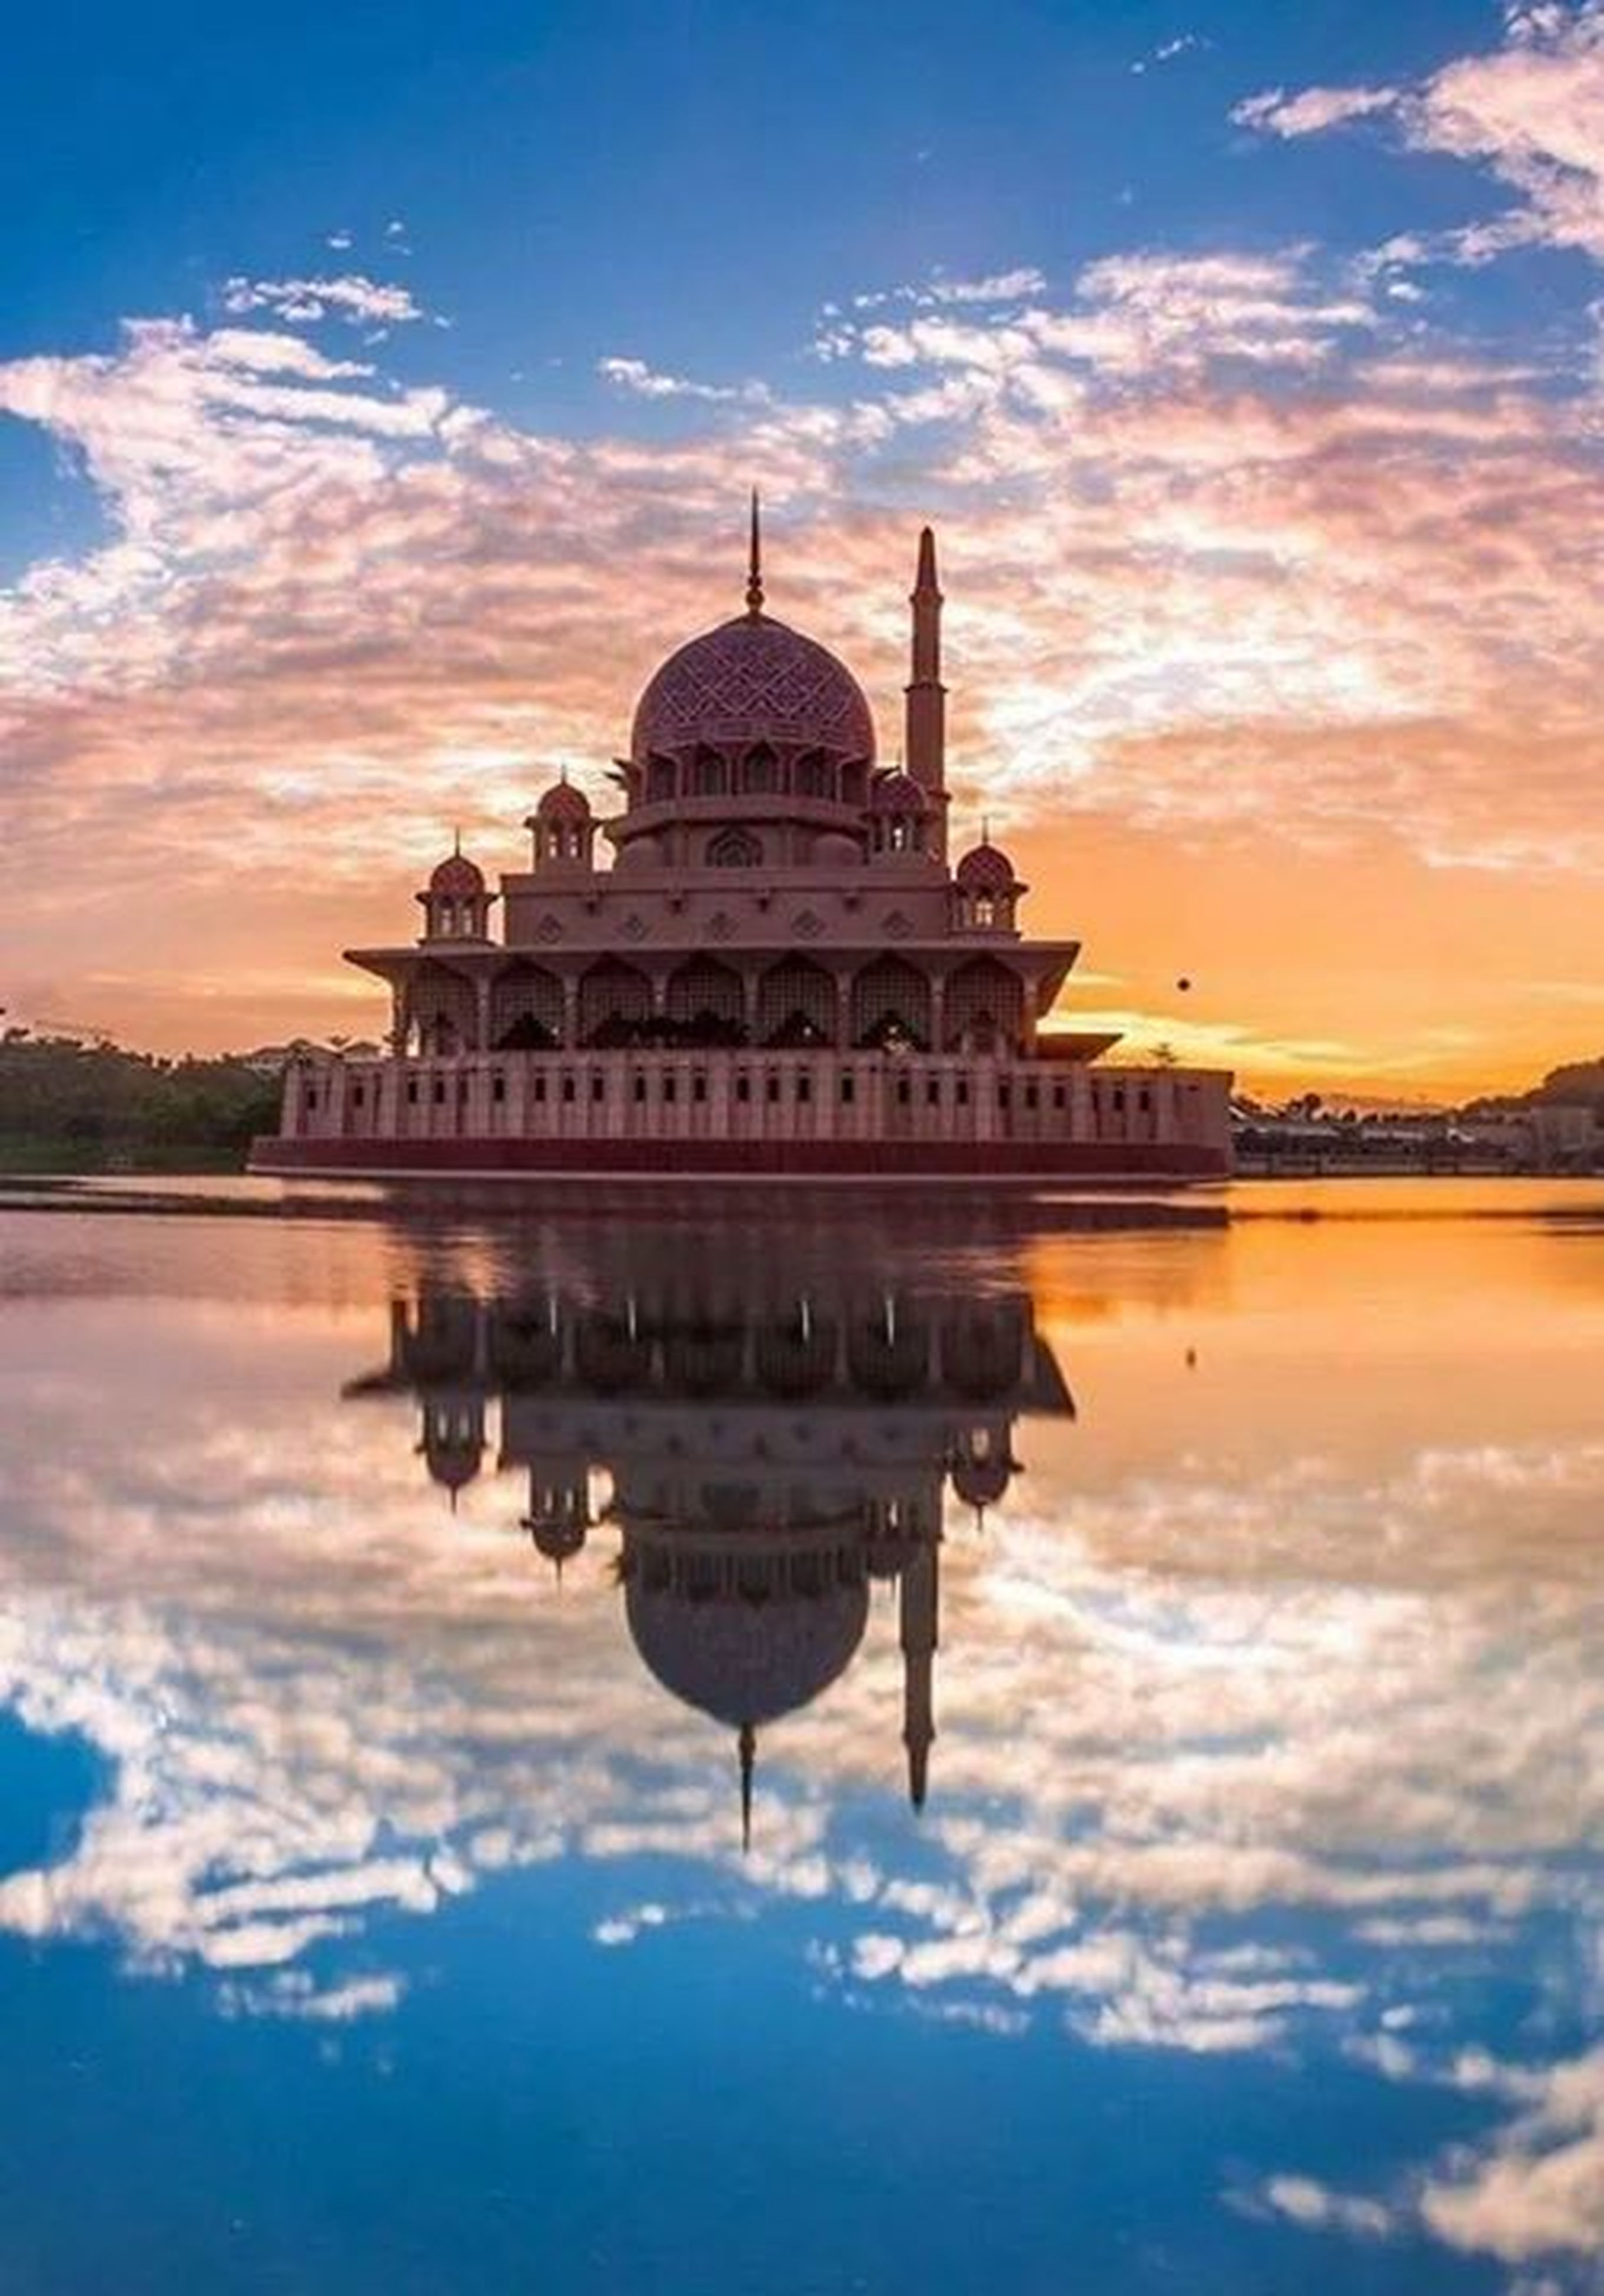 architecture, built structure, building exterior, famous place, sky, place of worship, sunset, travel destinations, tourism, religion, spirituality, dome, reflection, travel, international landmark, cloud - sky, water, history, waterfront, capital cities